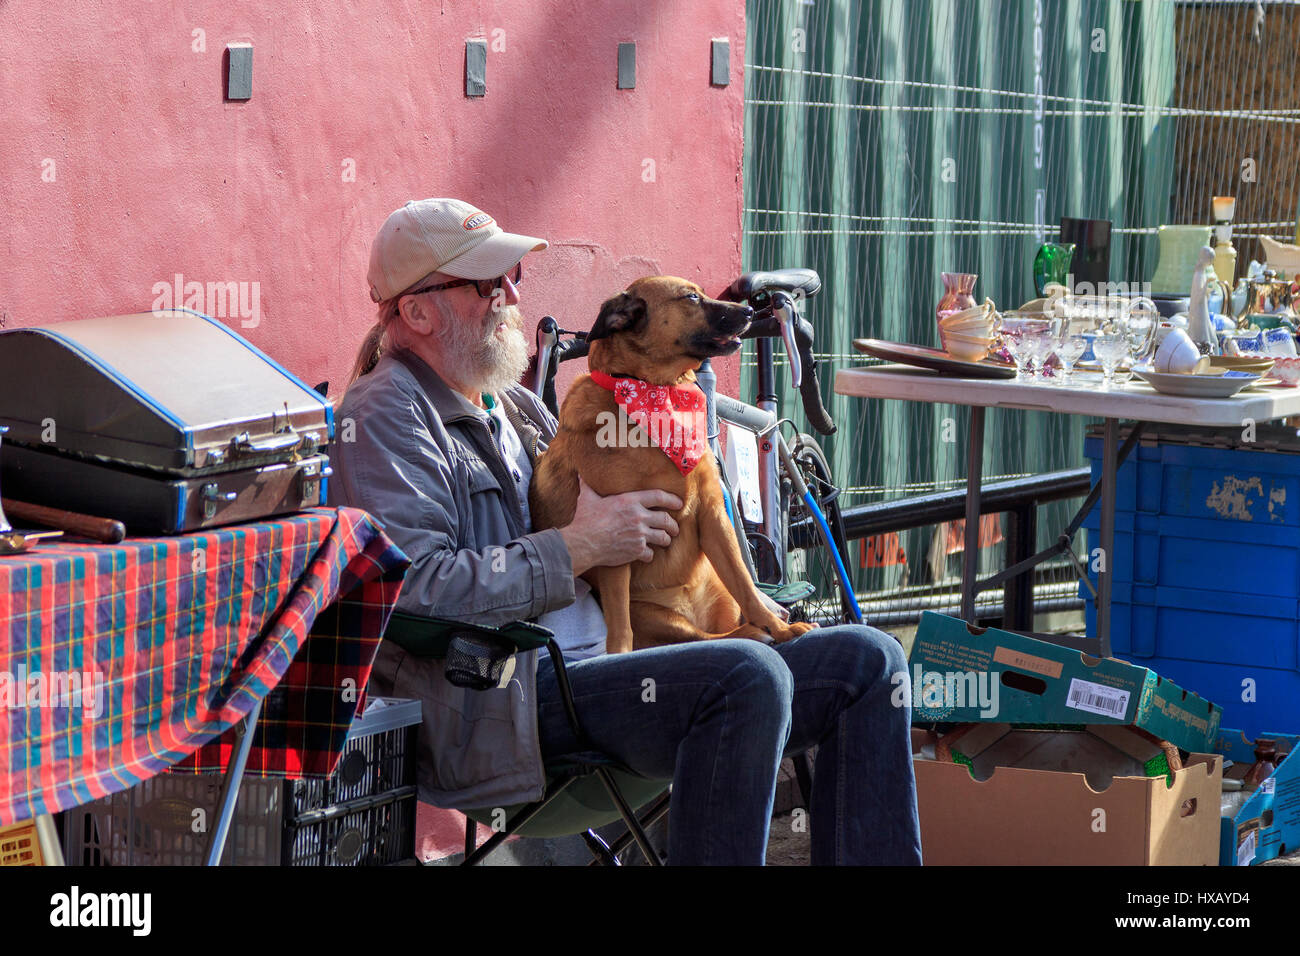 Stallholder at Glasgow's famous Barras open air and street market, sitting in the sun petting his dog. Glasgow. - Stock Image